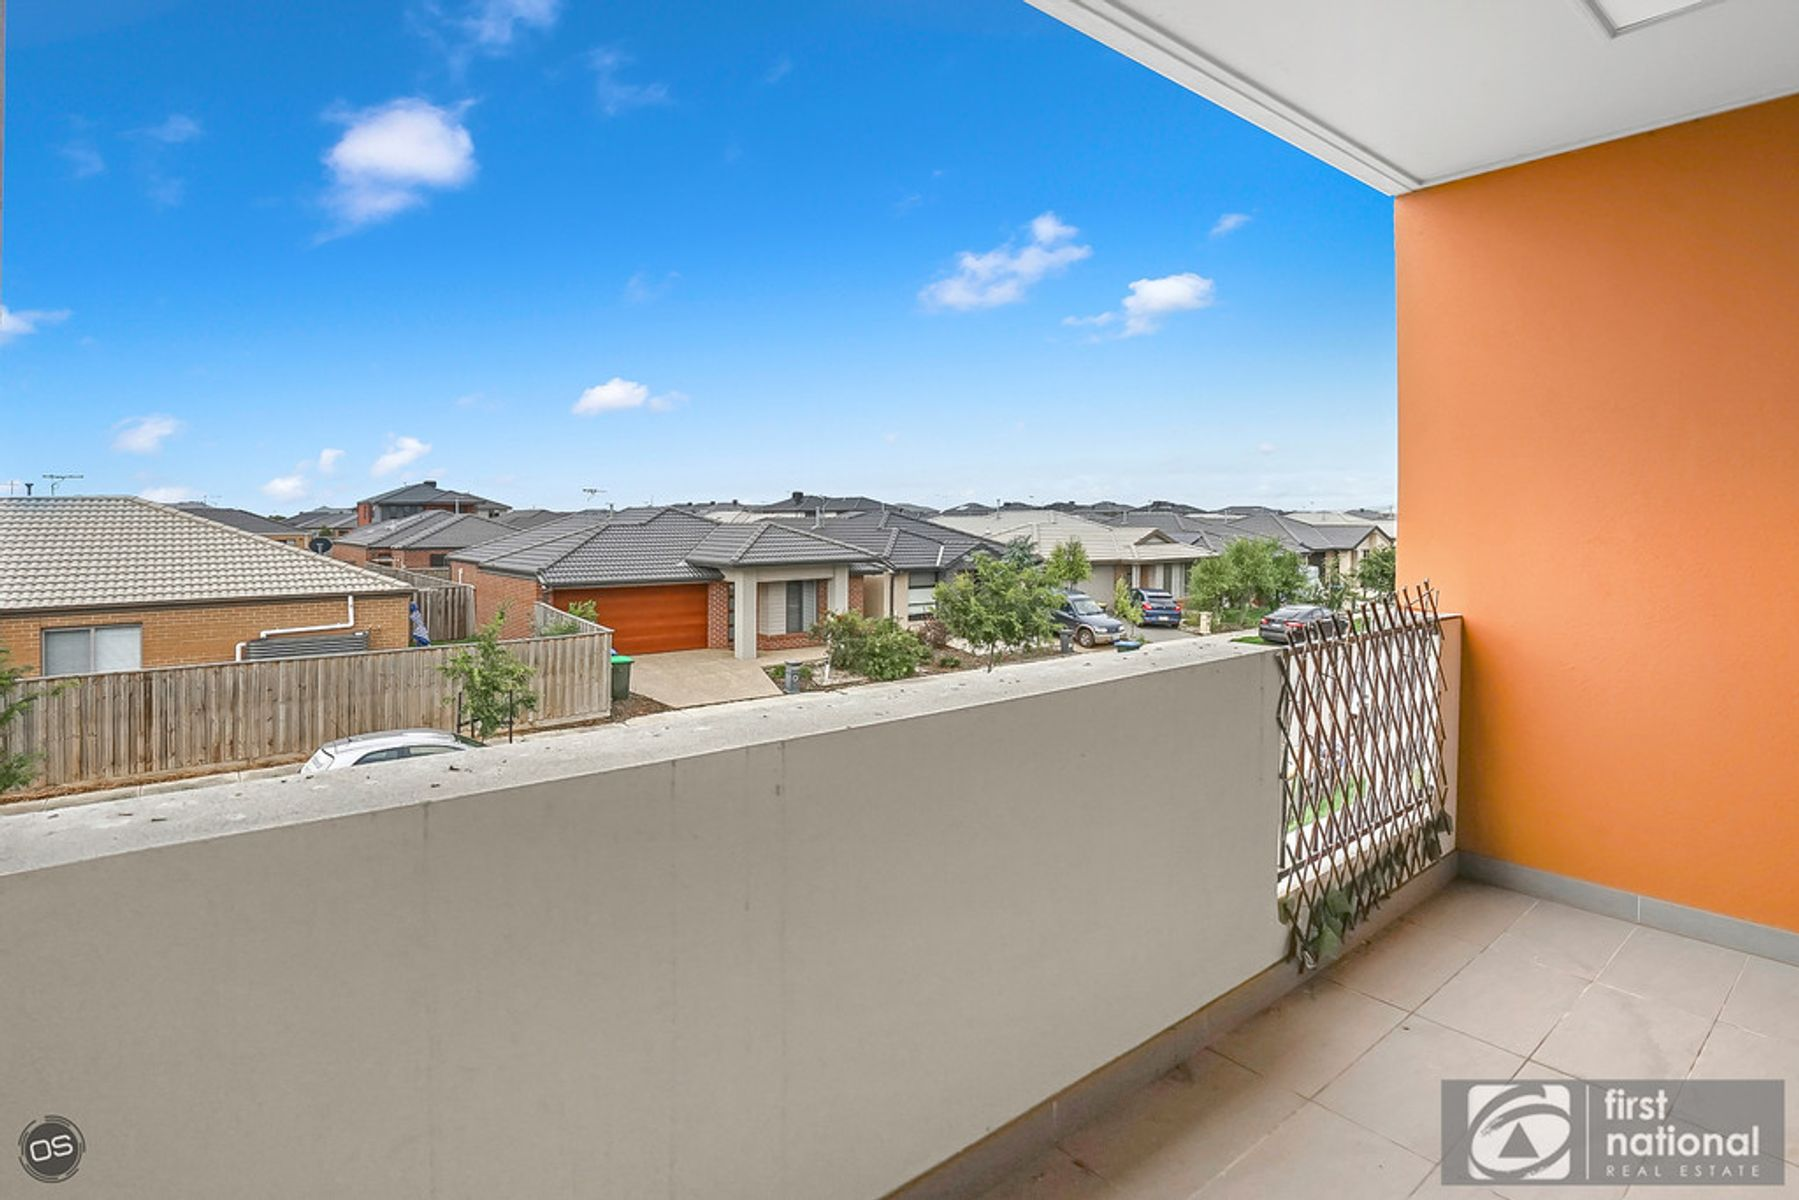 35 Jolimont Road, Point Cook, VIC 3030